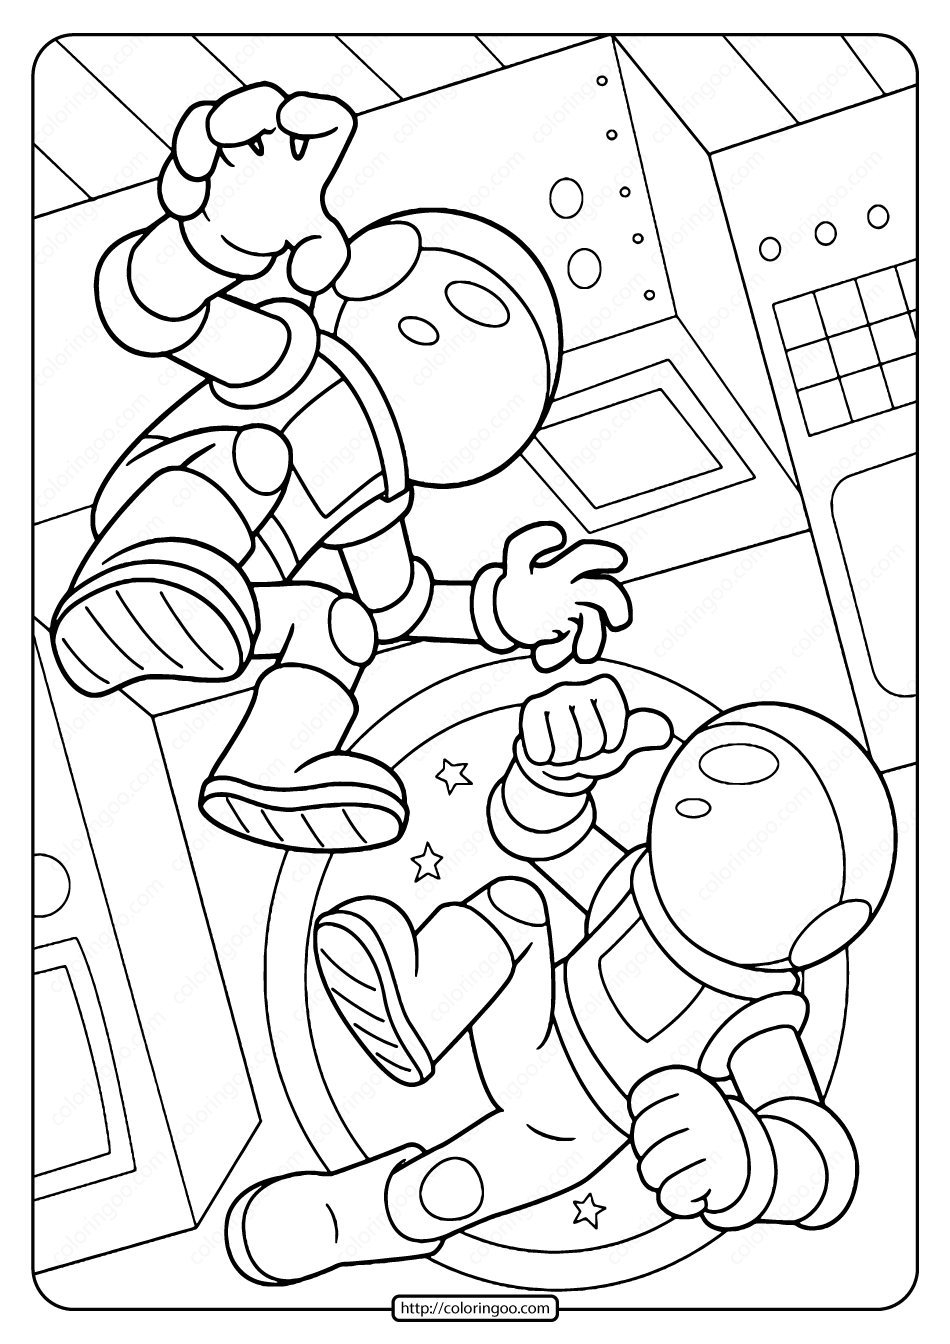 space coloring free easy to print space coloring pages tulamama coloring space